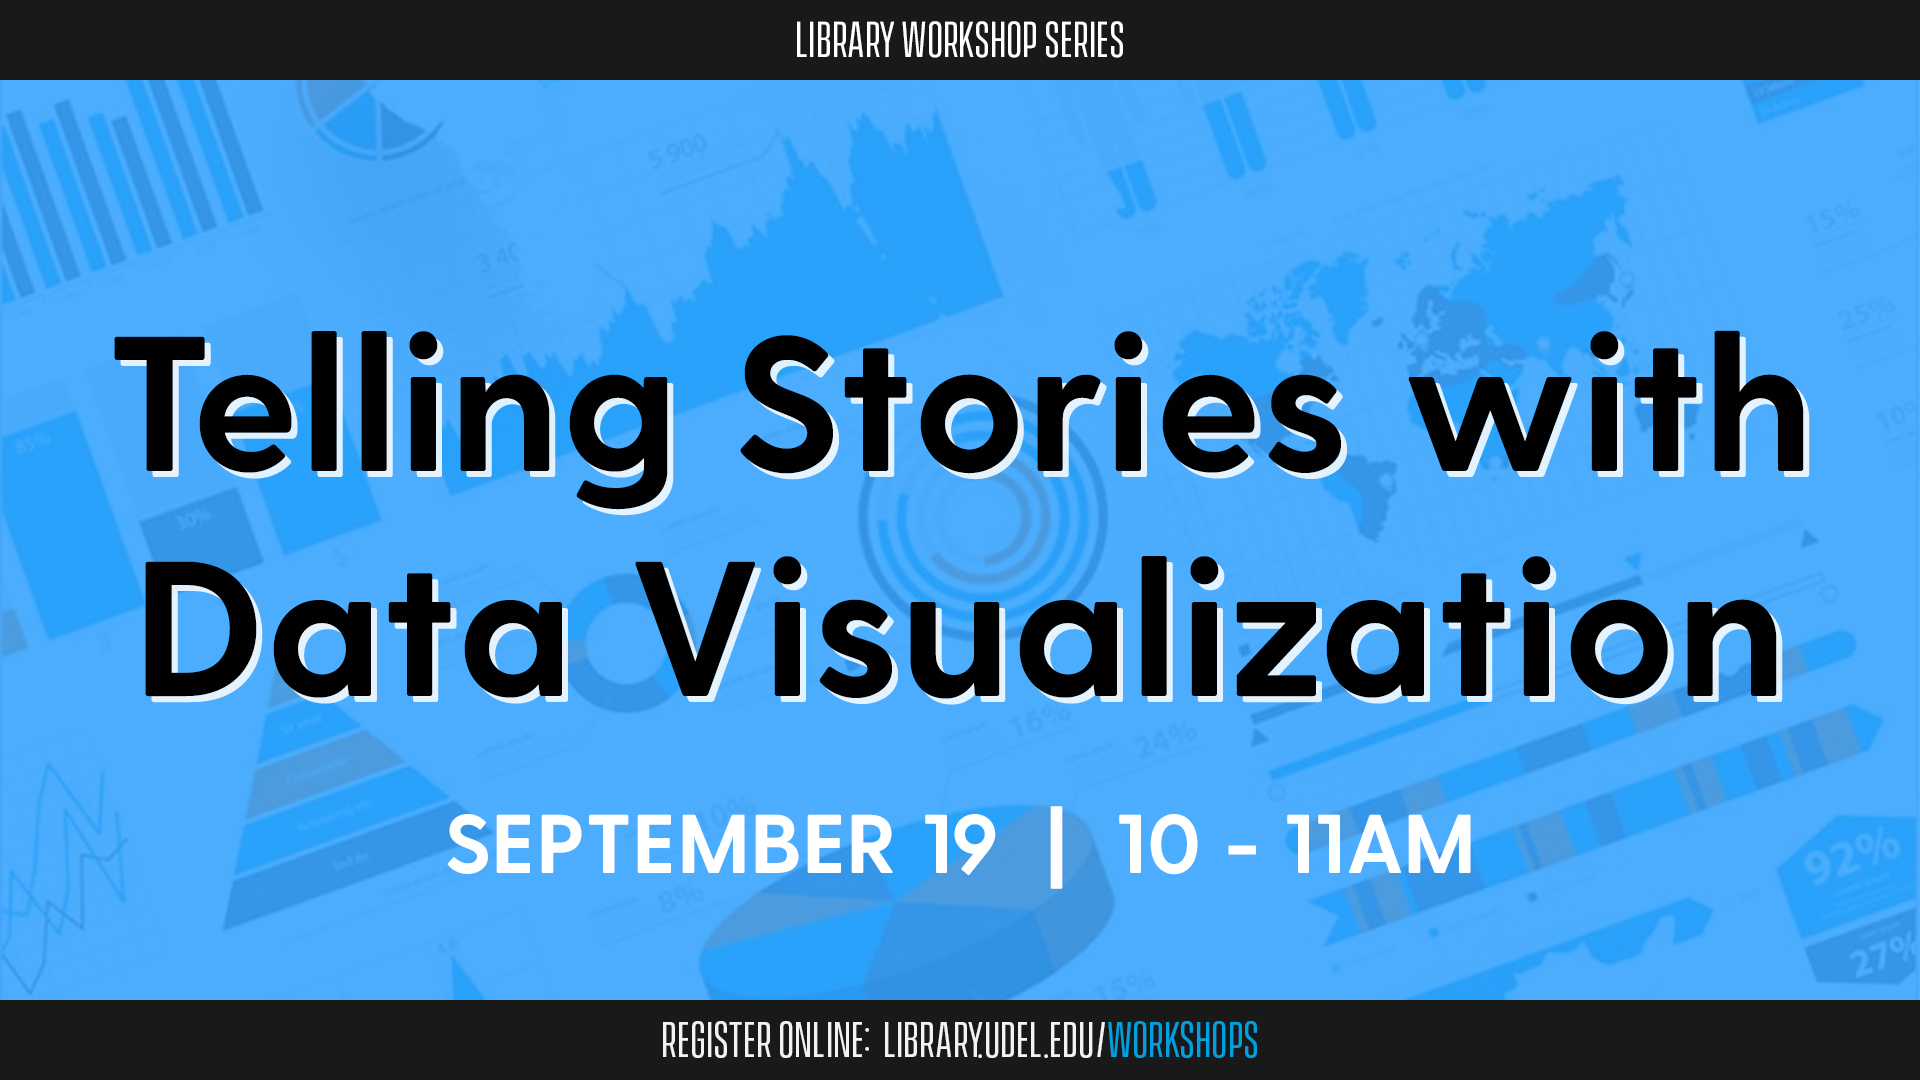 Telling Stories with Data Visualization